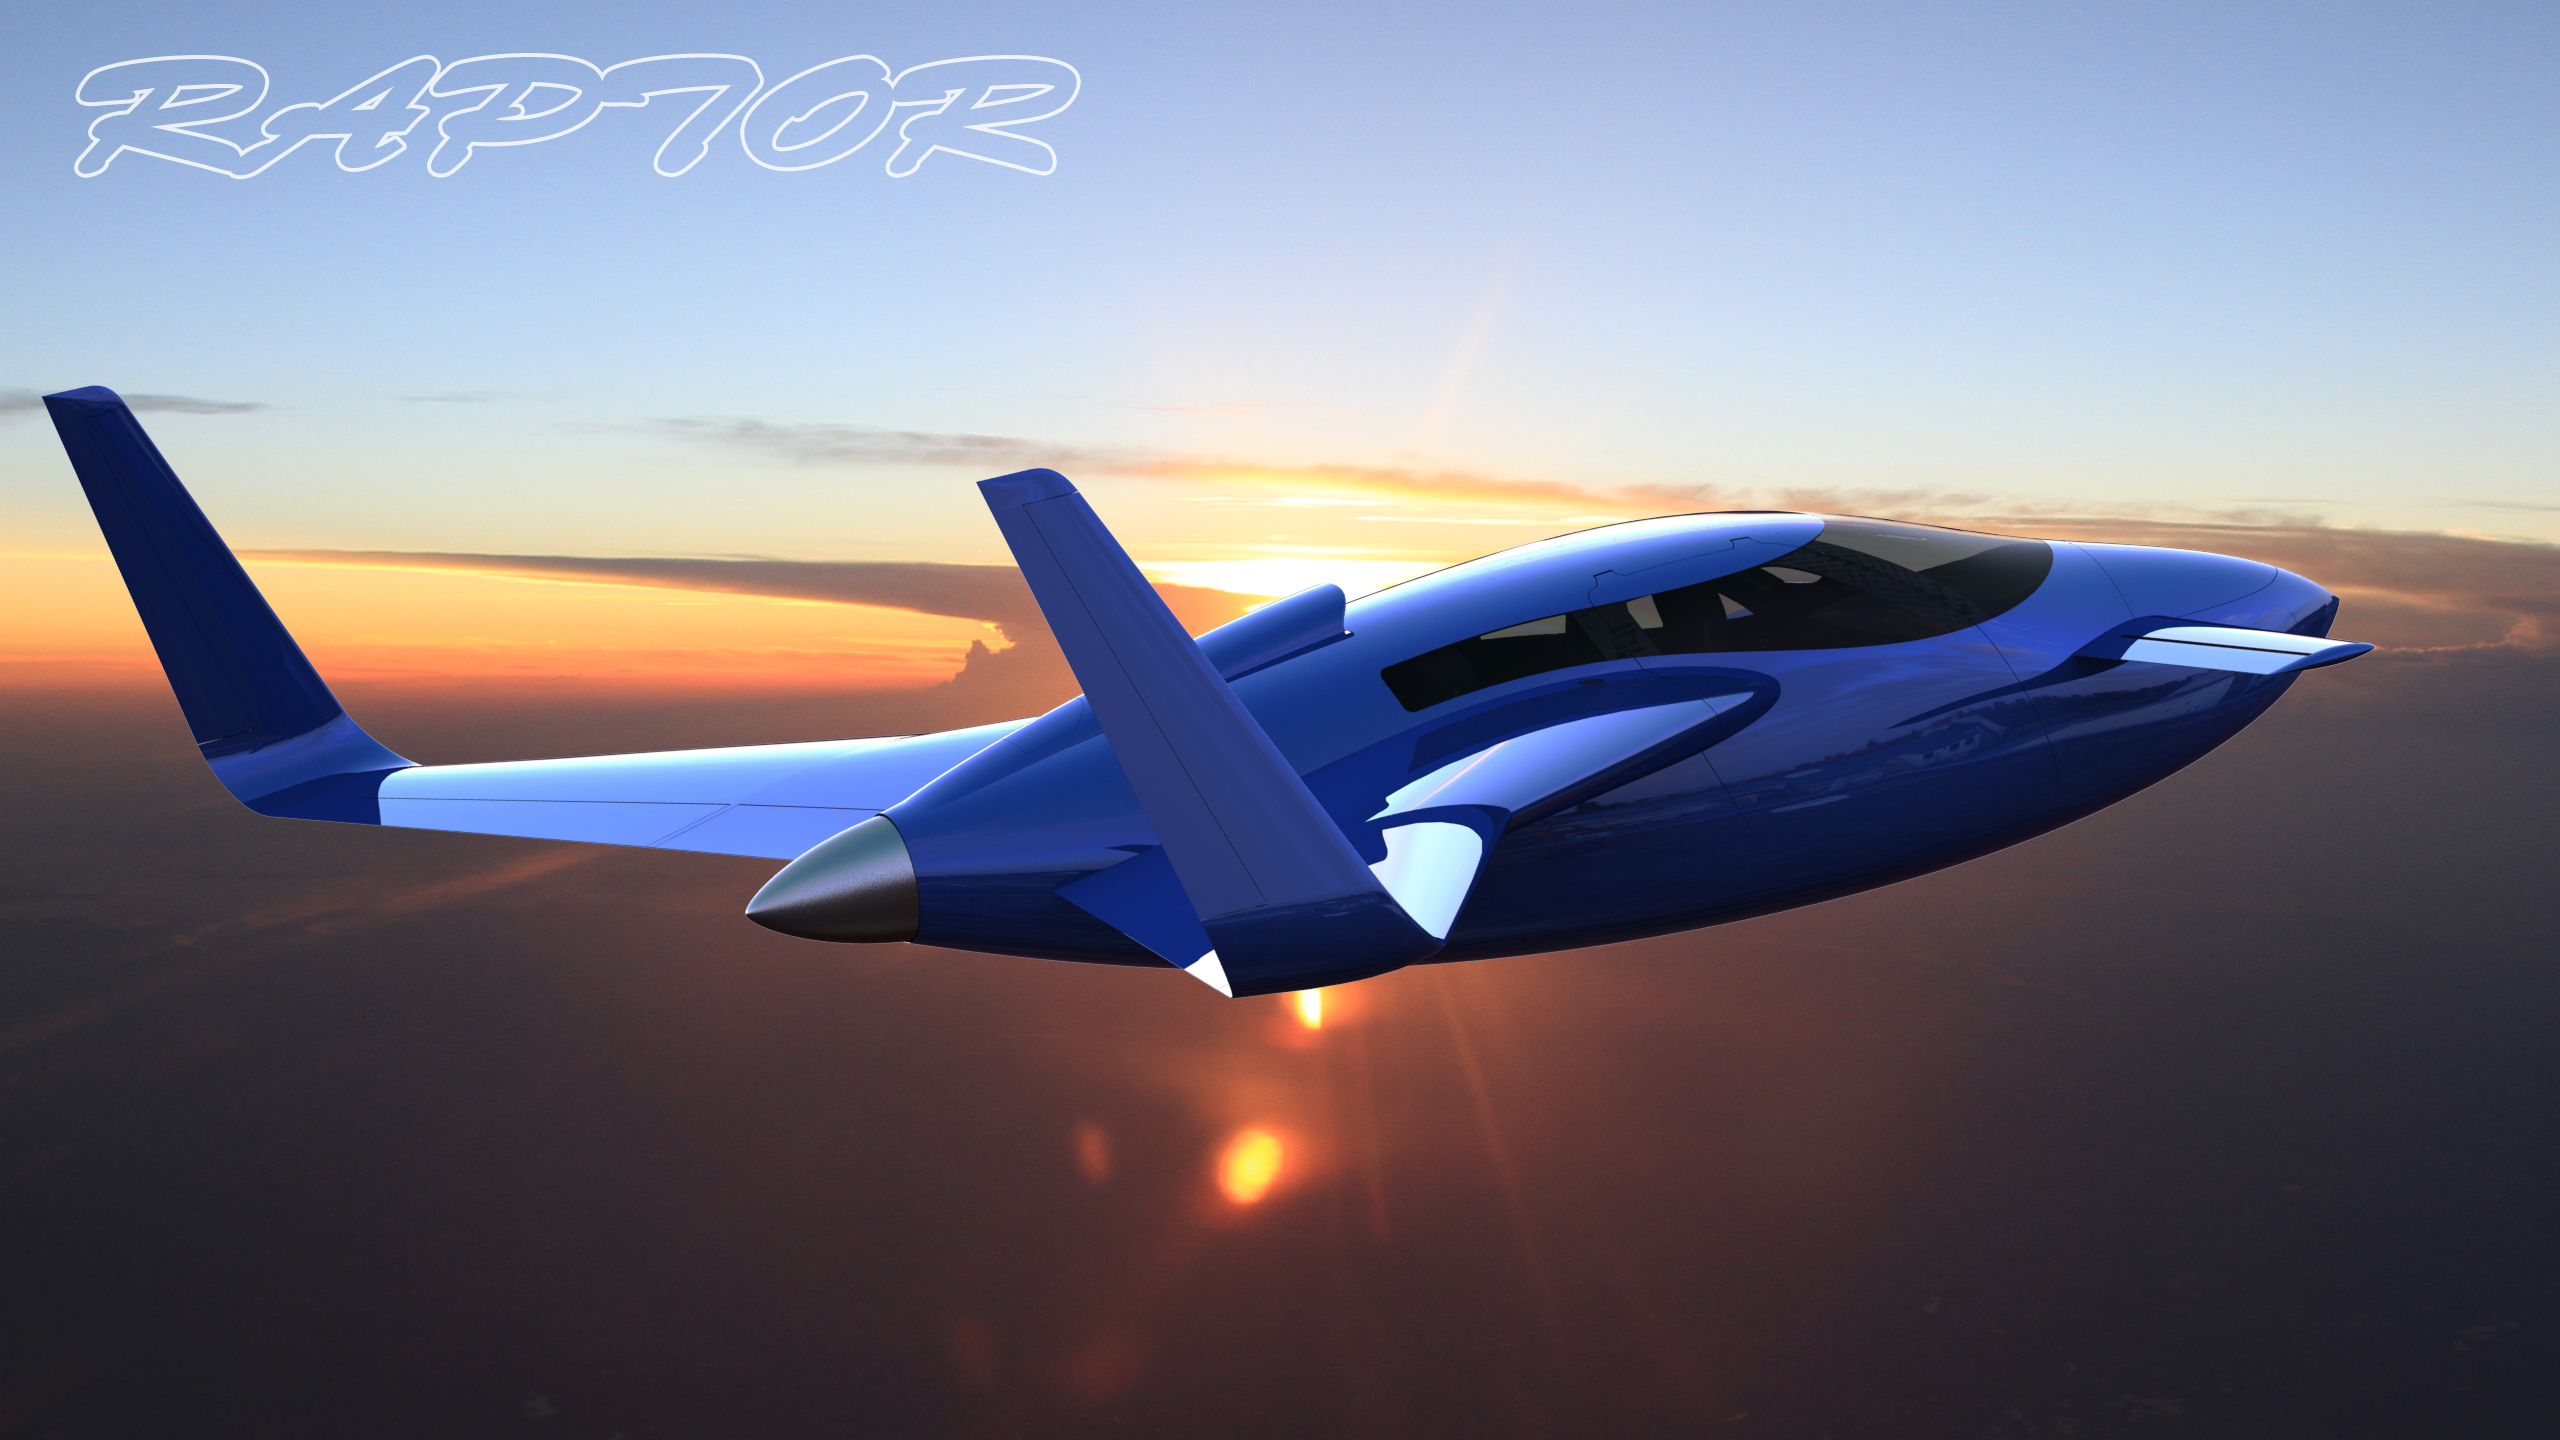 helicopter fuel cost with Raptor Aircraft on 266872 Afalina Helicopter Cheapest Russia further General Aviation Homebuilt Aircraft additionally 75 also Galactica Star together with F35 Production 2018 2020 Rate Could Be.